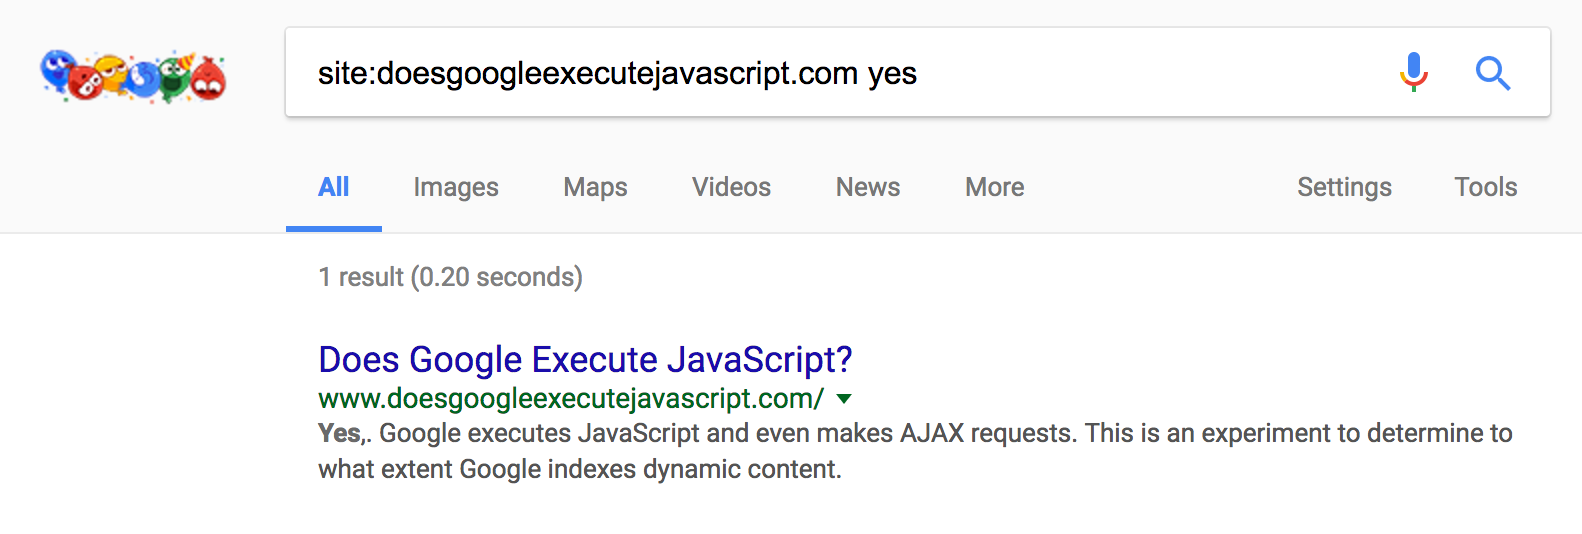 Yes,. Google executes JavaScript and even makes AJAX requests. This is an experiment to determine to what extent Google indexes dynamic content.